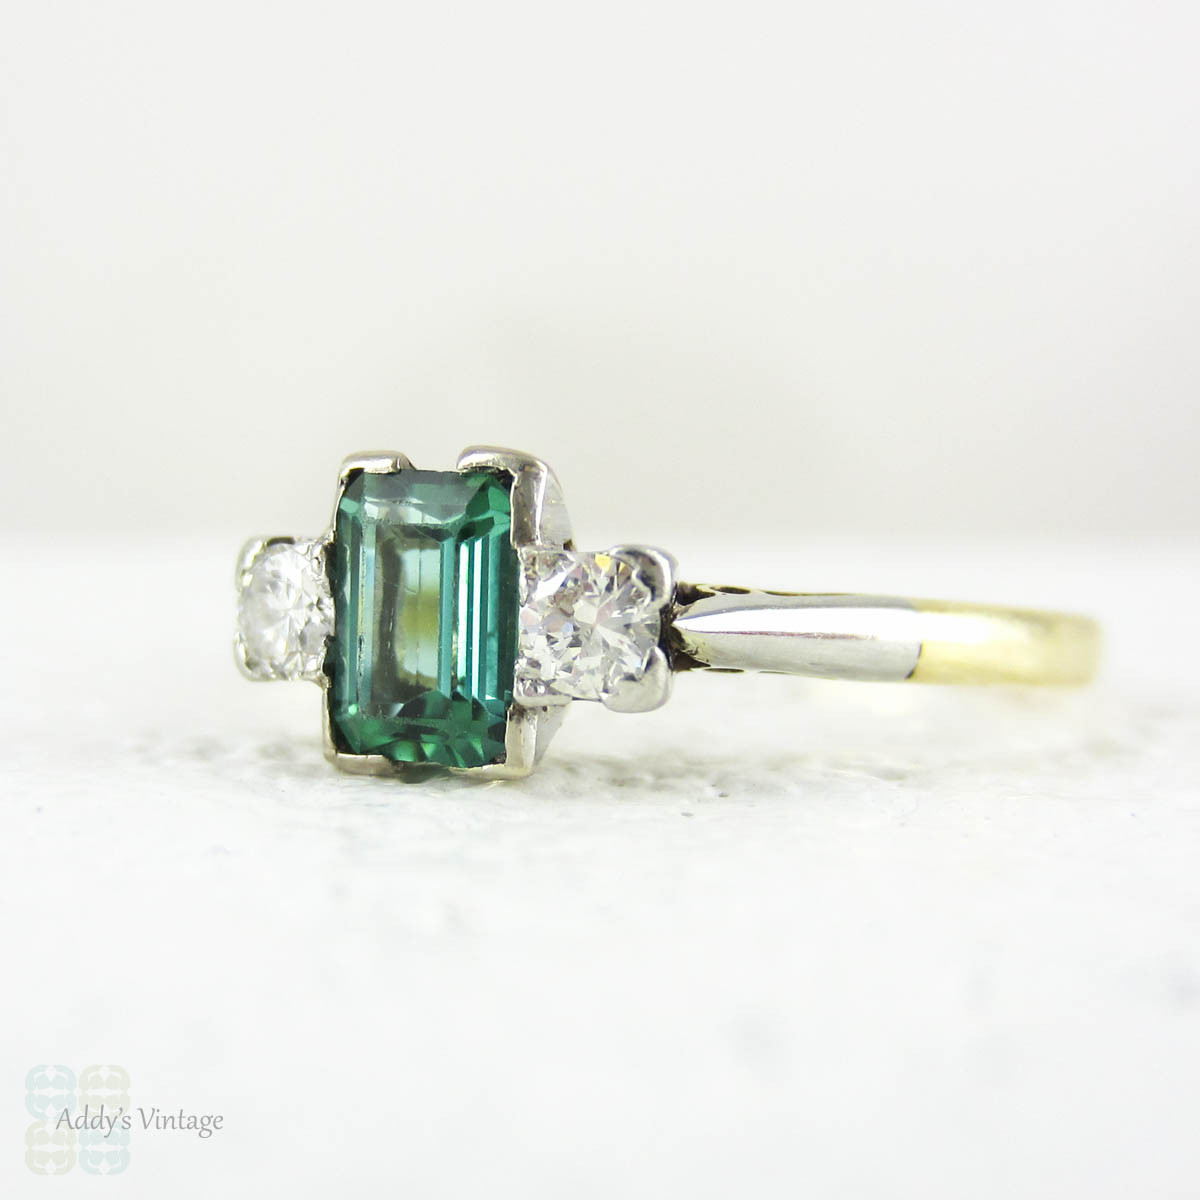 ring engagement greentourmalinelogo rings wedding of round white tourmaline gold lord green sets pave diamond products